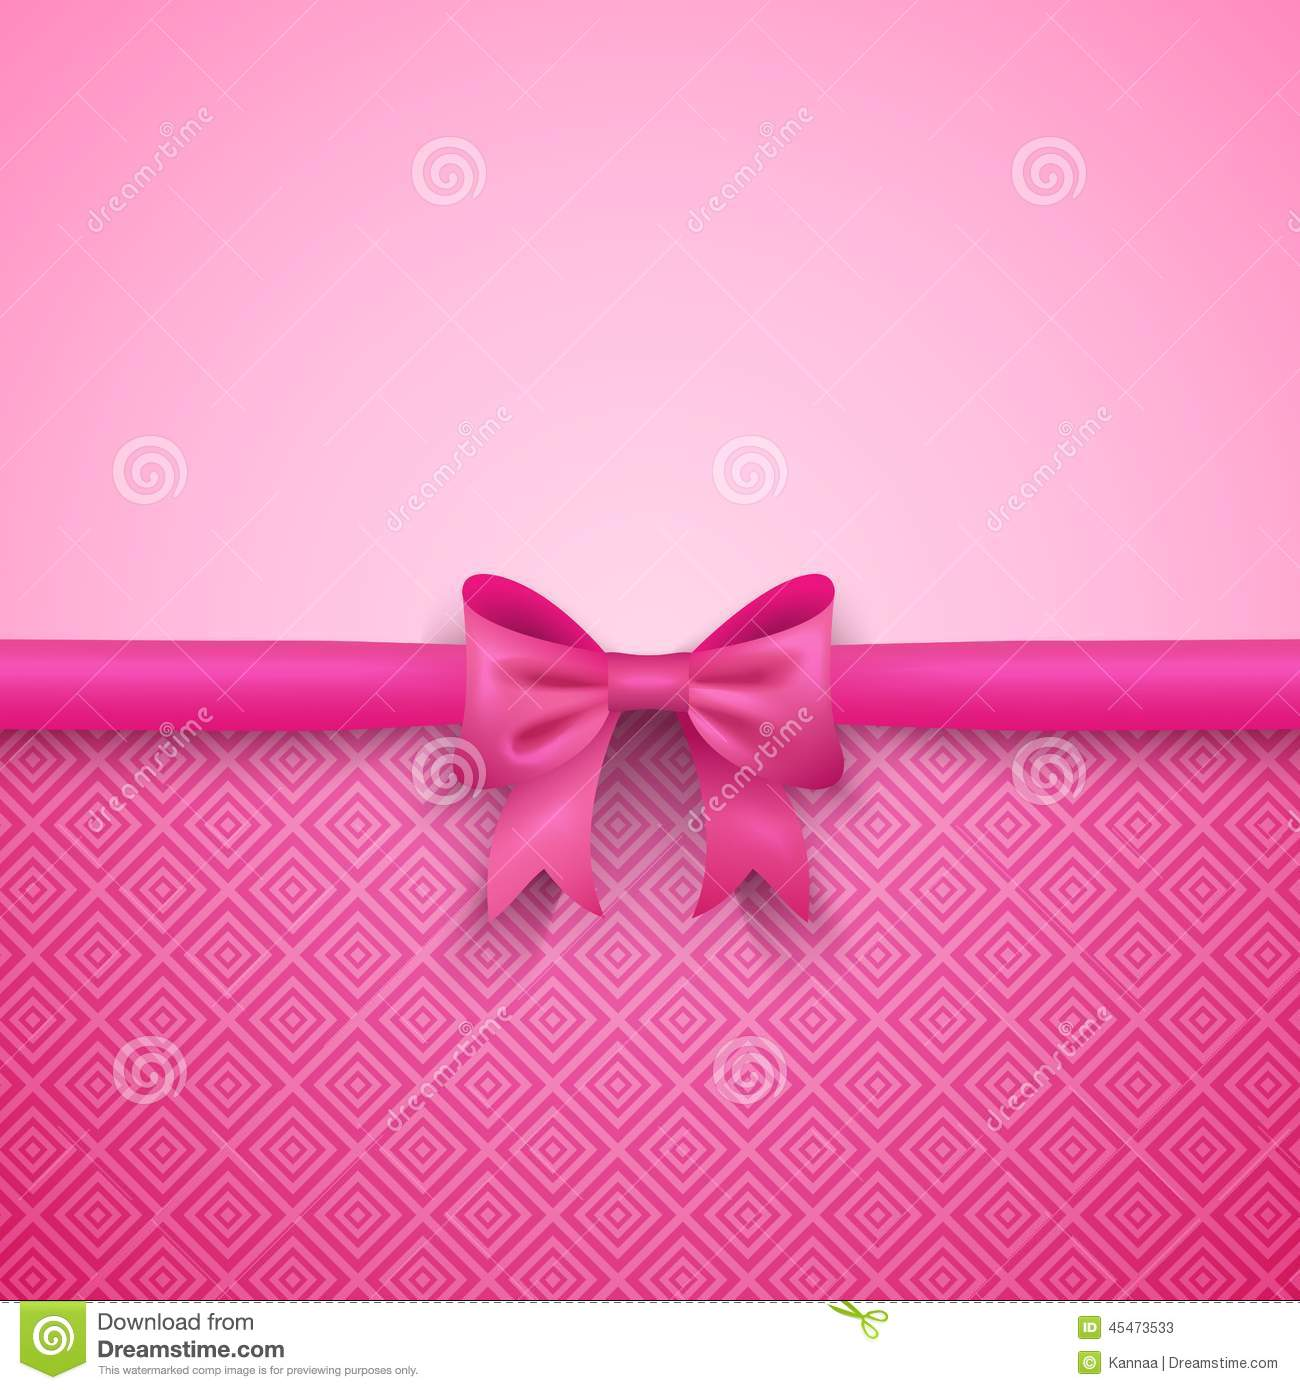 romantic vector pink background with cute bow and stock illustration